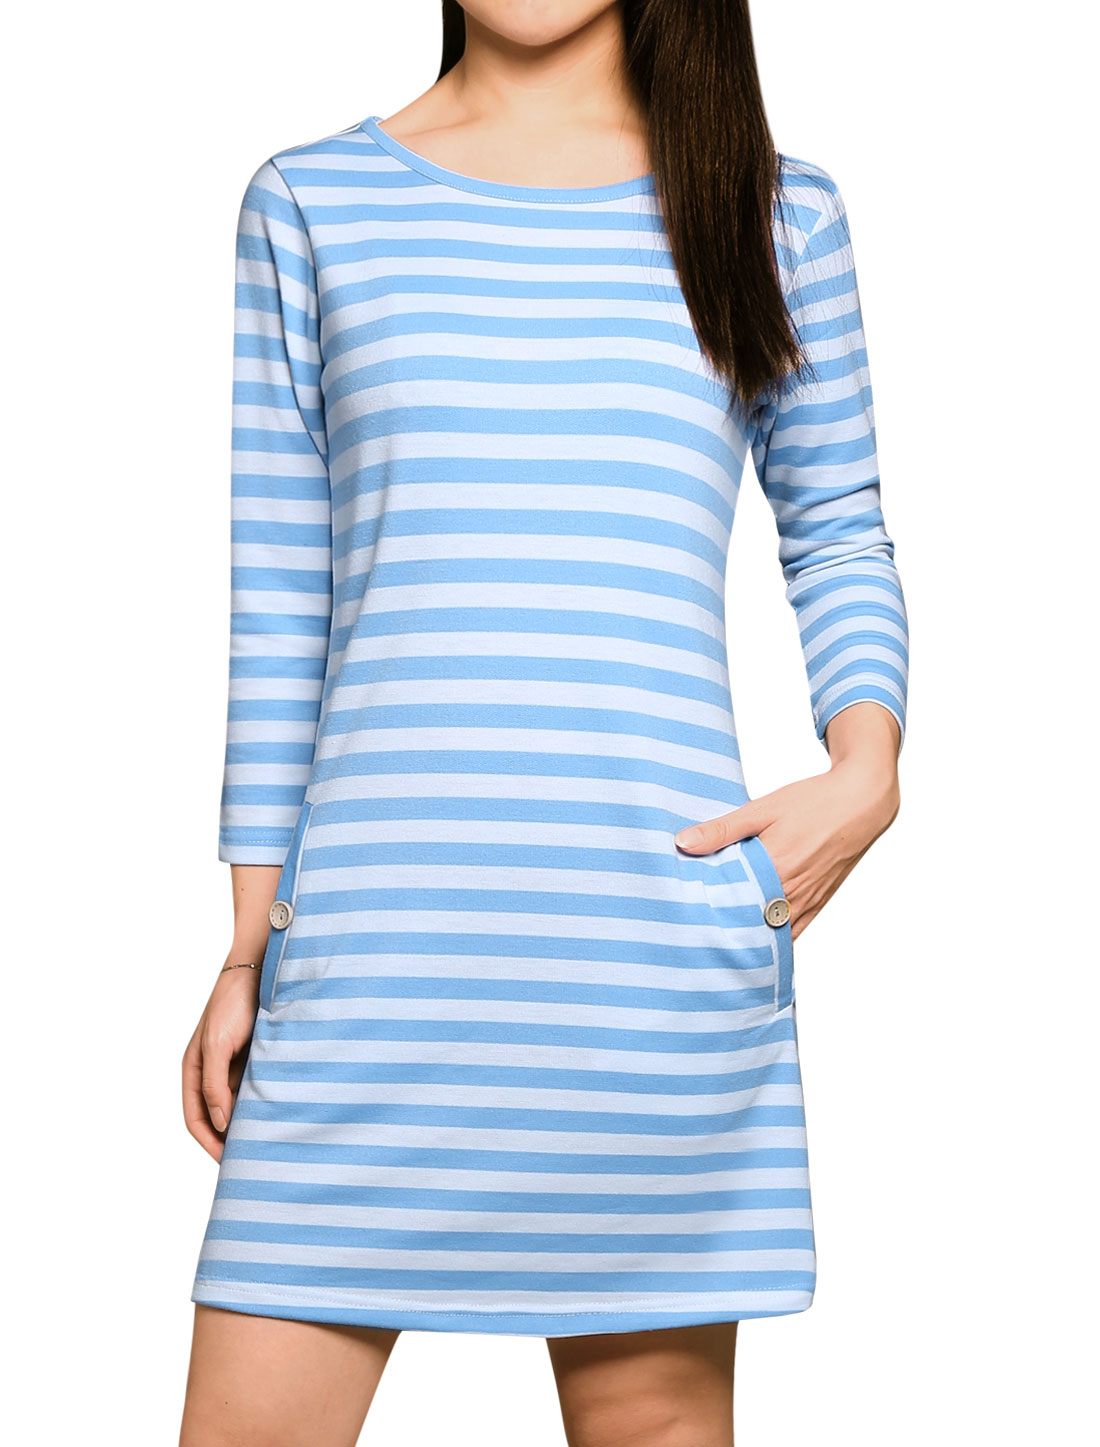 Woman Stripes 3/4 Sleeves Slant Pockets Front Unlined Mini Dress Blue XL